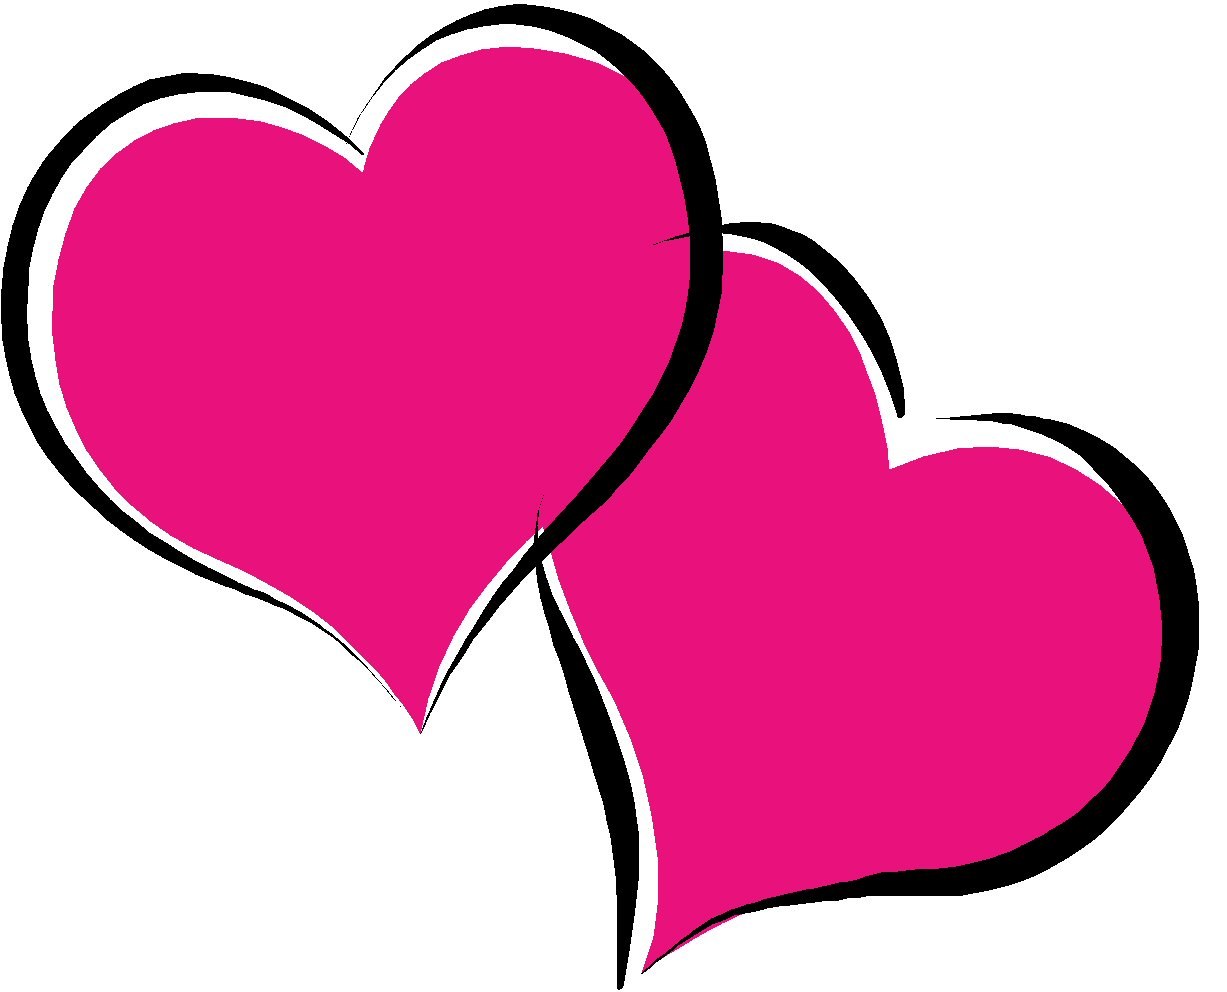 Double Heart Power Point Backgrounds Fre-Double Heart Power Point Backgrounds Free Download; Purple Intertwined Hearts clip art .-13